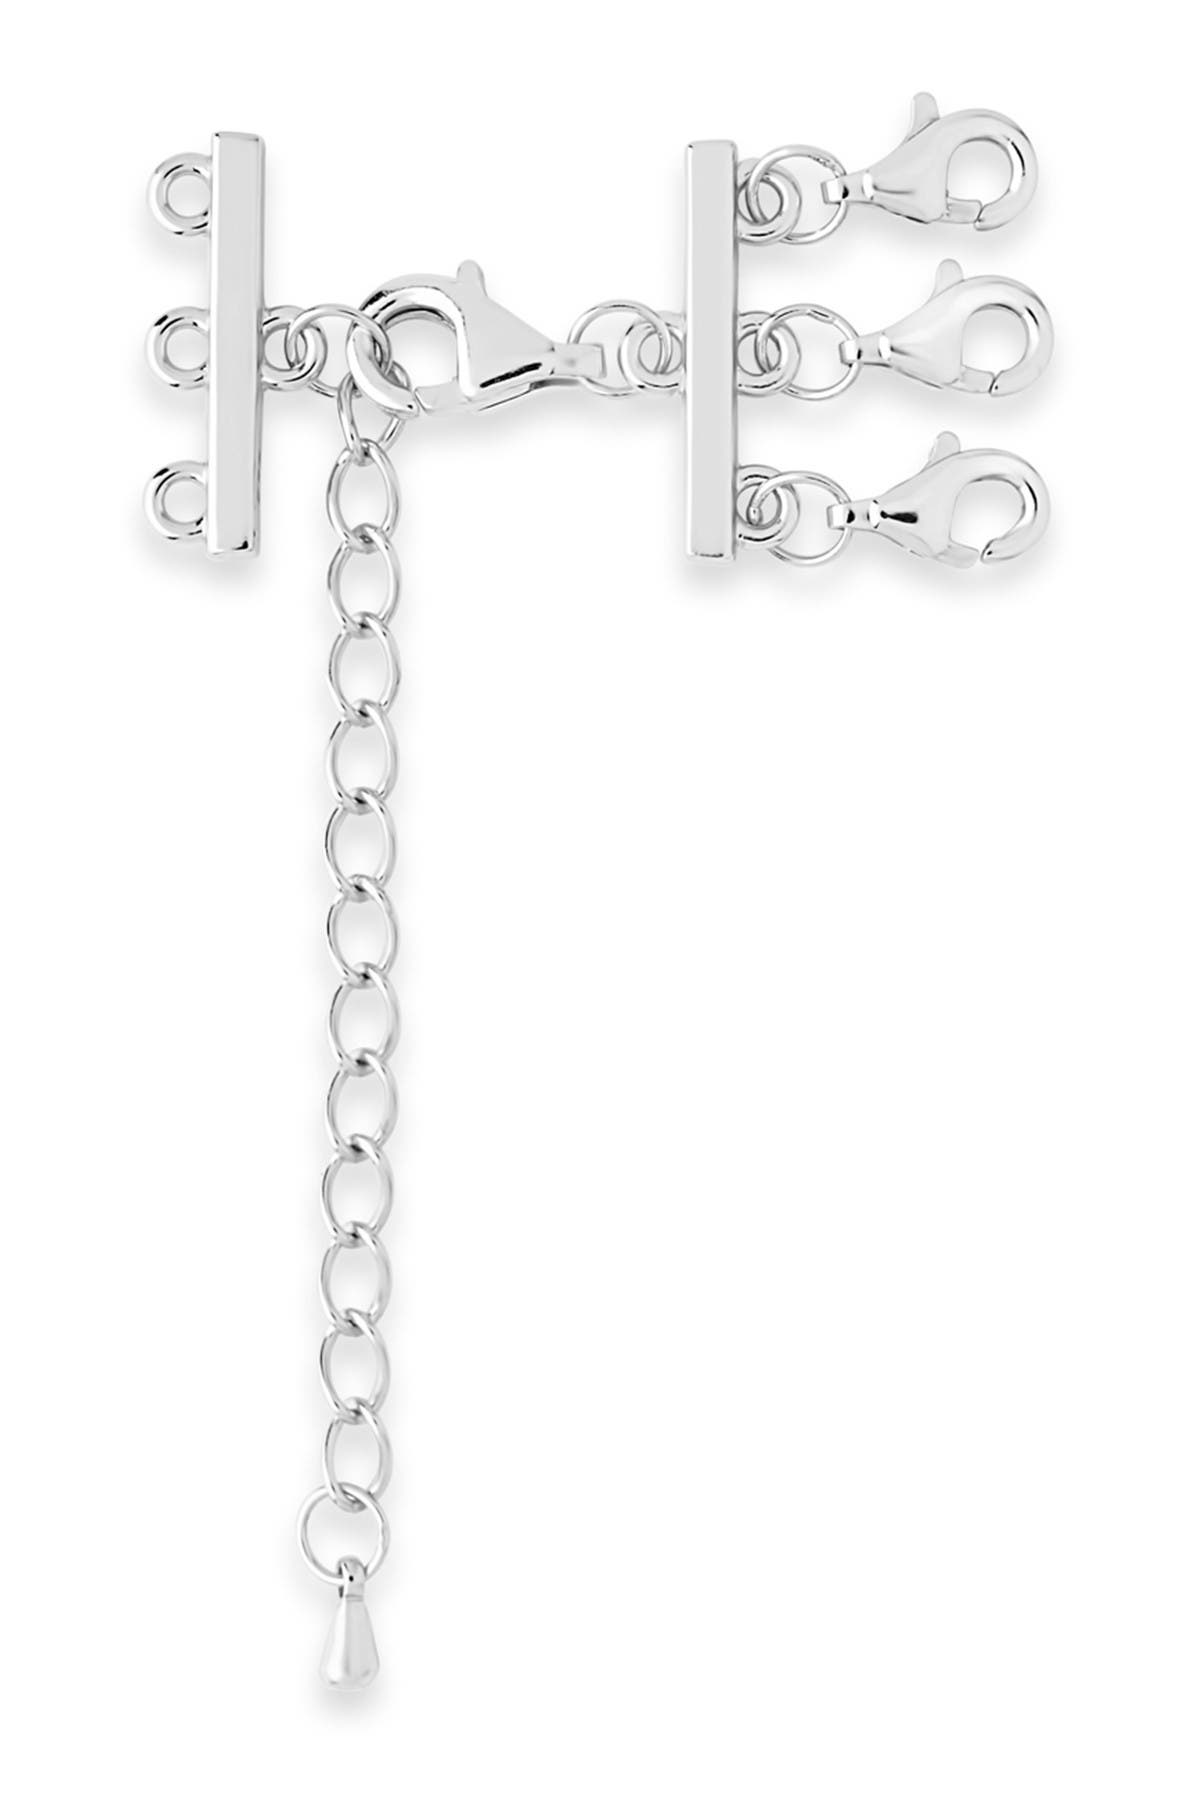 Image of Sterling Forever Sterling Silver Triple Layer Necklace Spacer